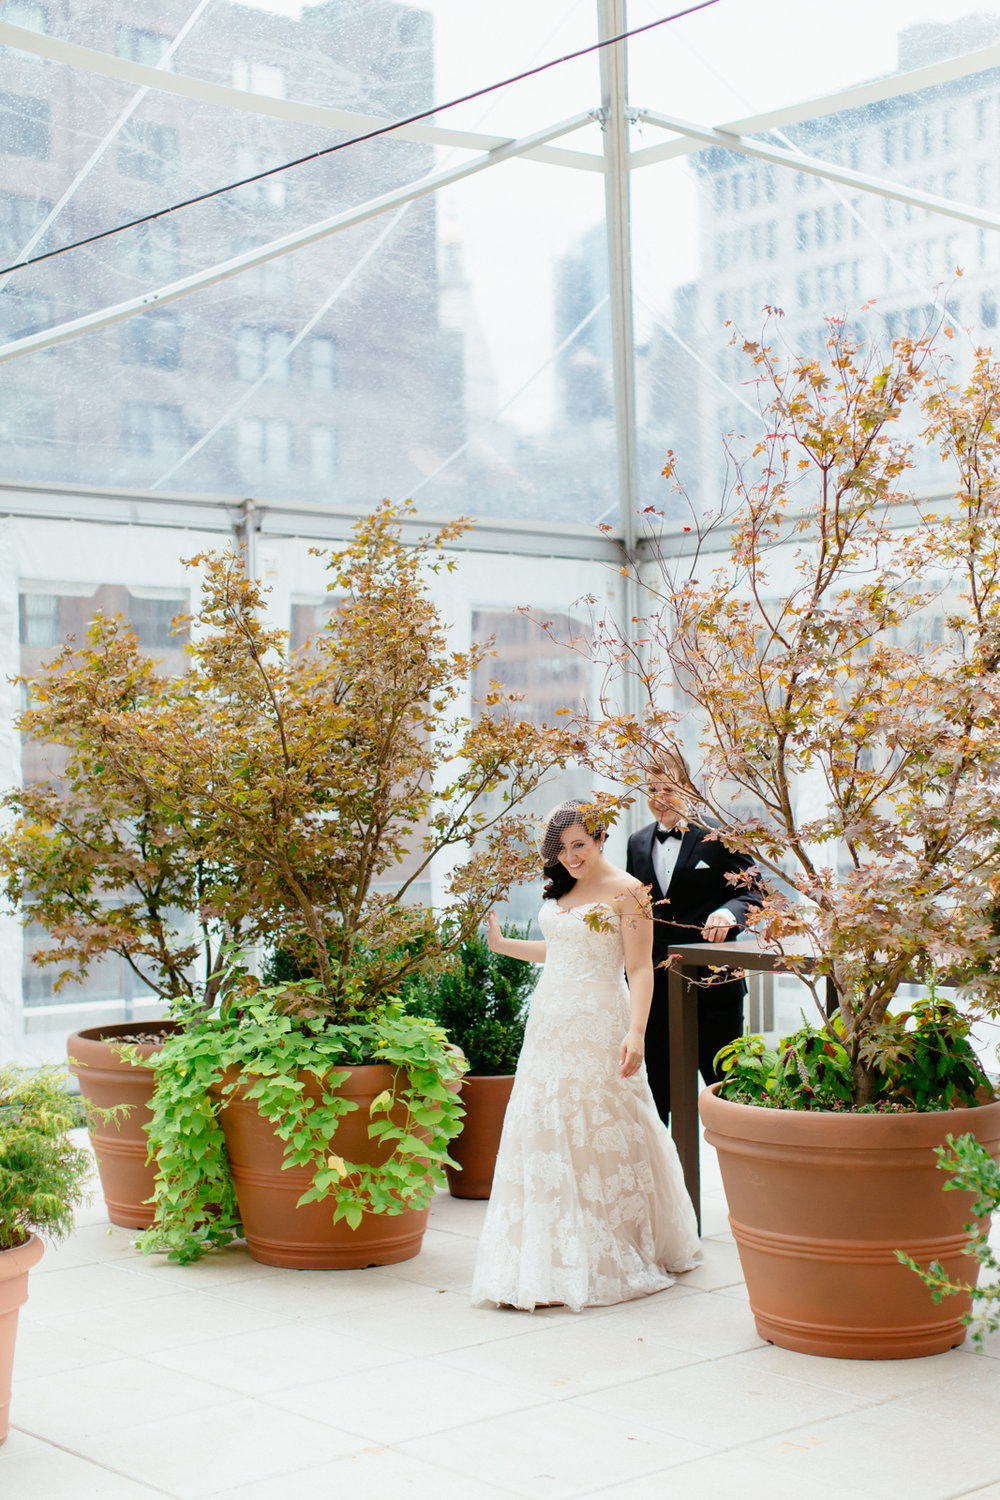 NYC Wedding Photography Lofts at Prince Brooklyn NYC Photographer Boris Zaretsky _B2C7306.jpg